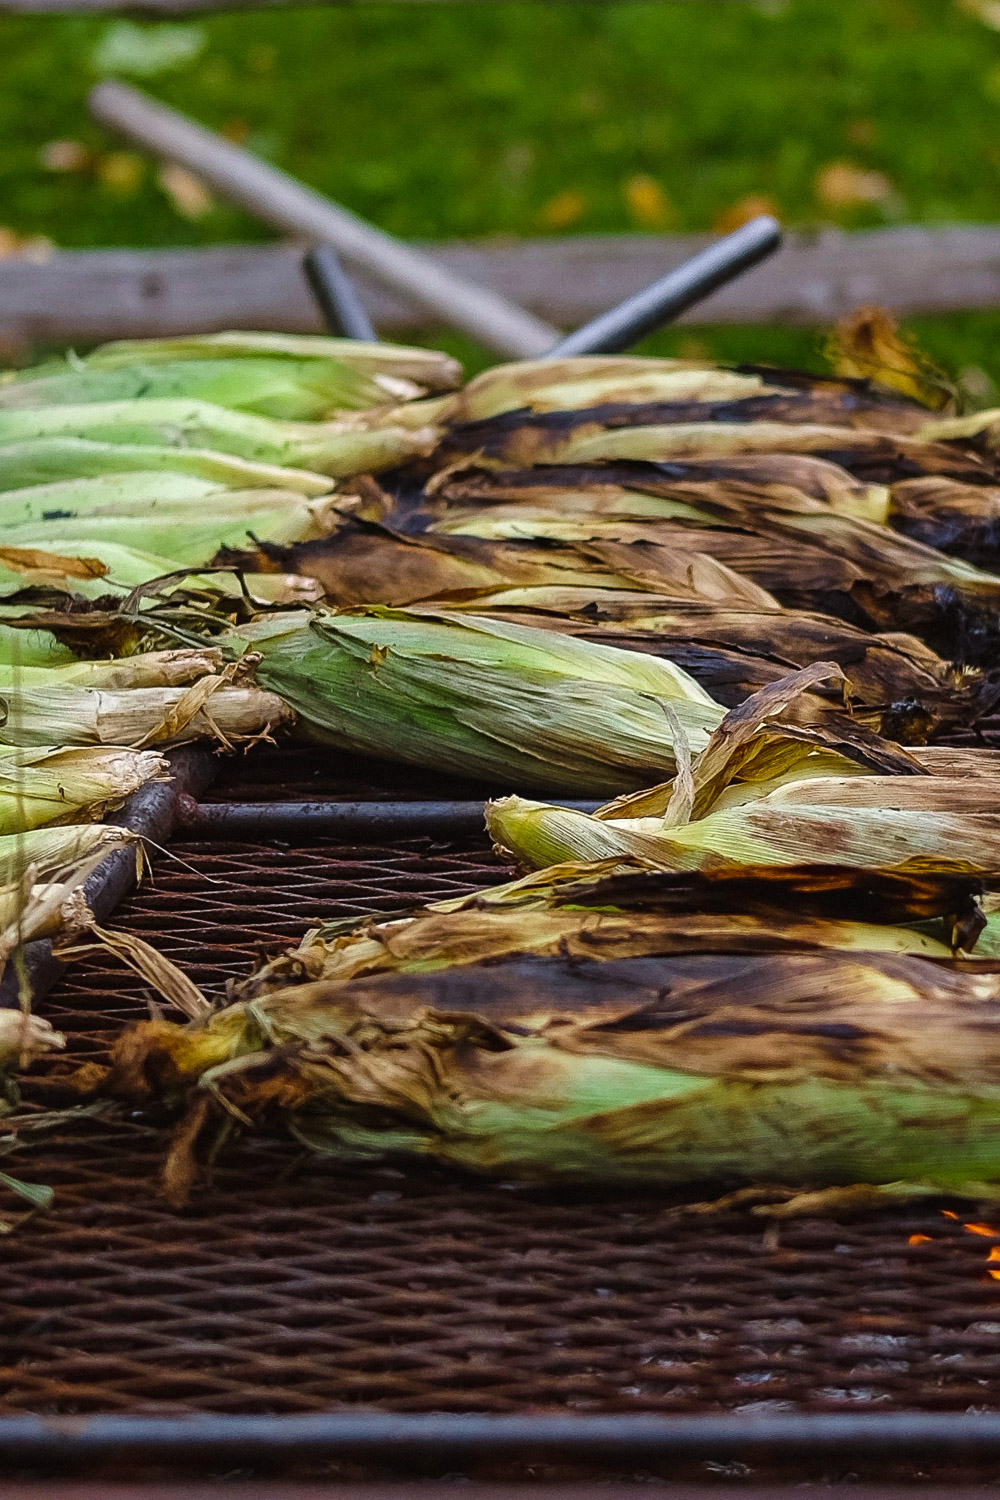 Corn on the grill at Chudleigh's Apple Farm